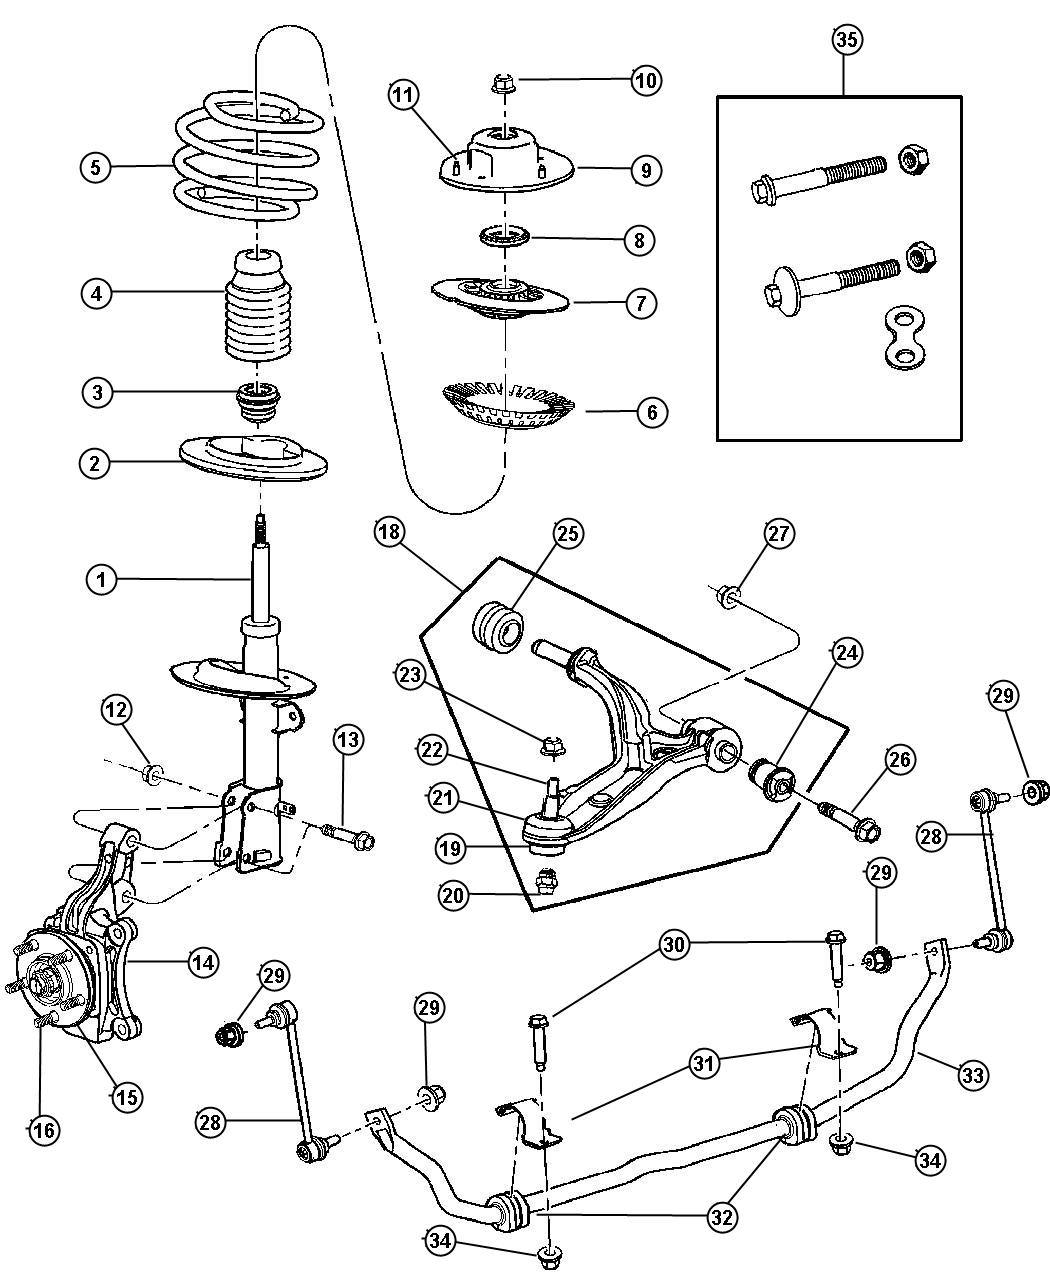 Plymouth Voyager Fuse Box Diagram Wiring Library 2007 Scion 2001 Dodge Durango Suspension 00 Chrysler Grand